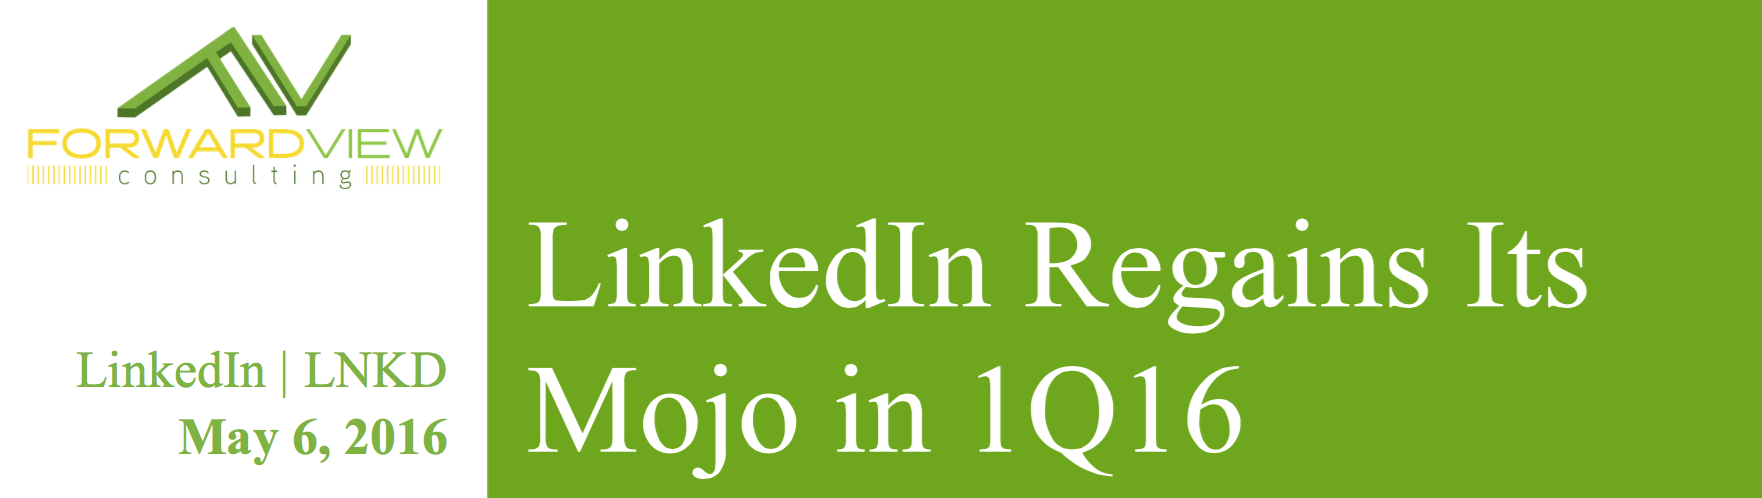 LinkedIn Regains Its Mojo in 1Q16